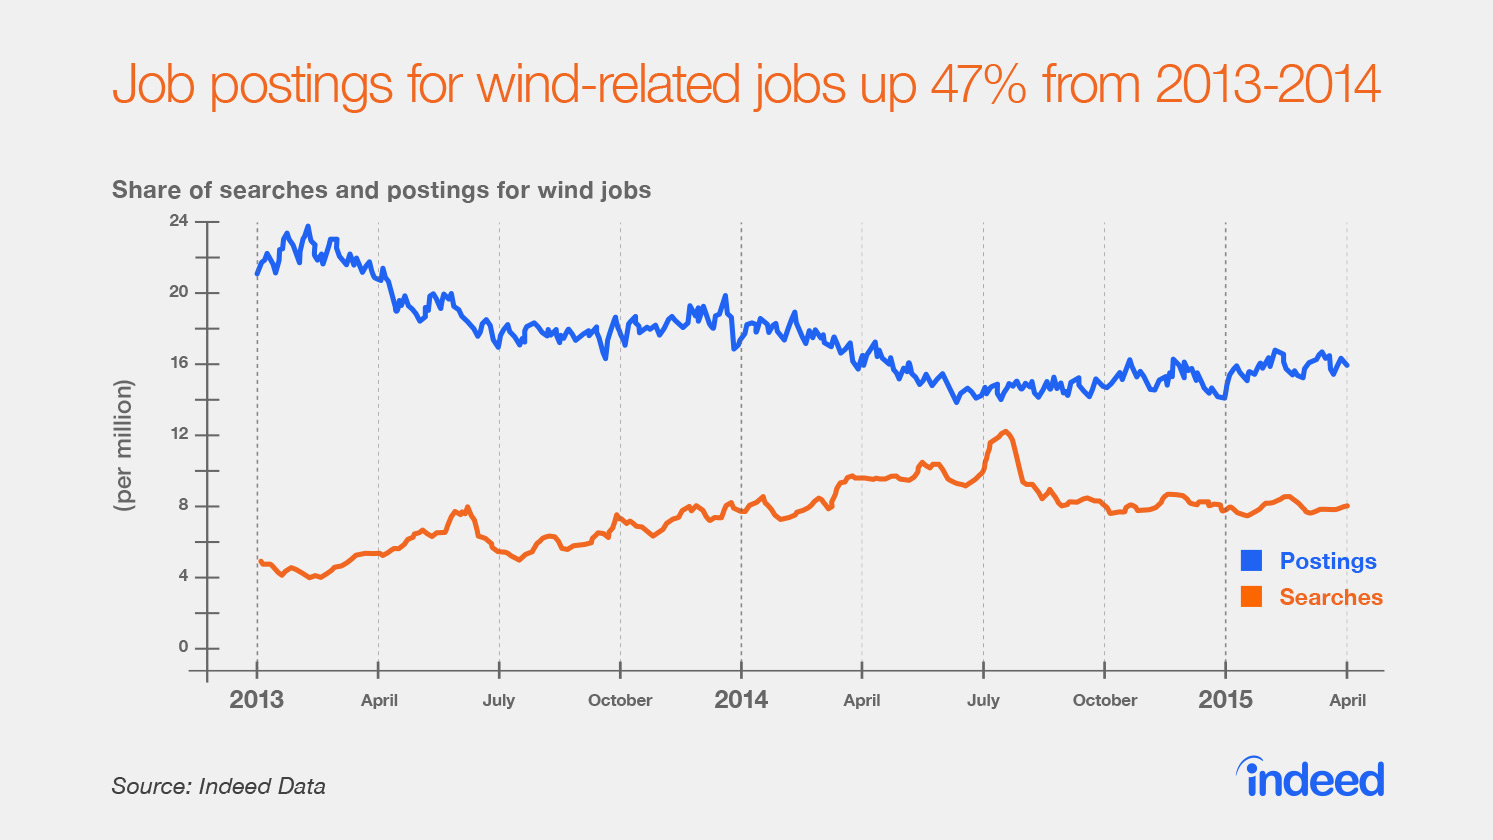 from 2013 to 2014 wind related job postings grew by 47